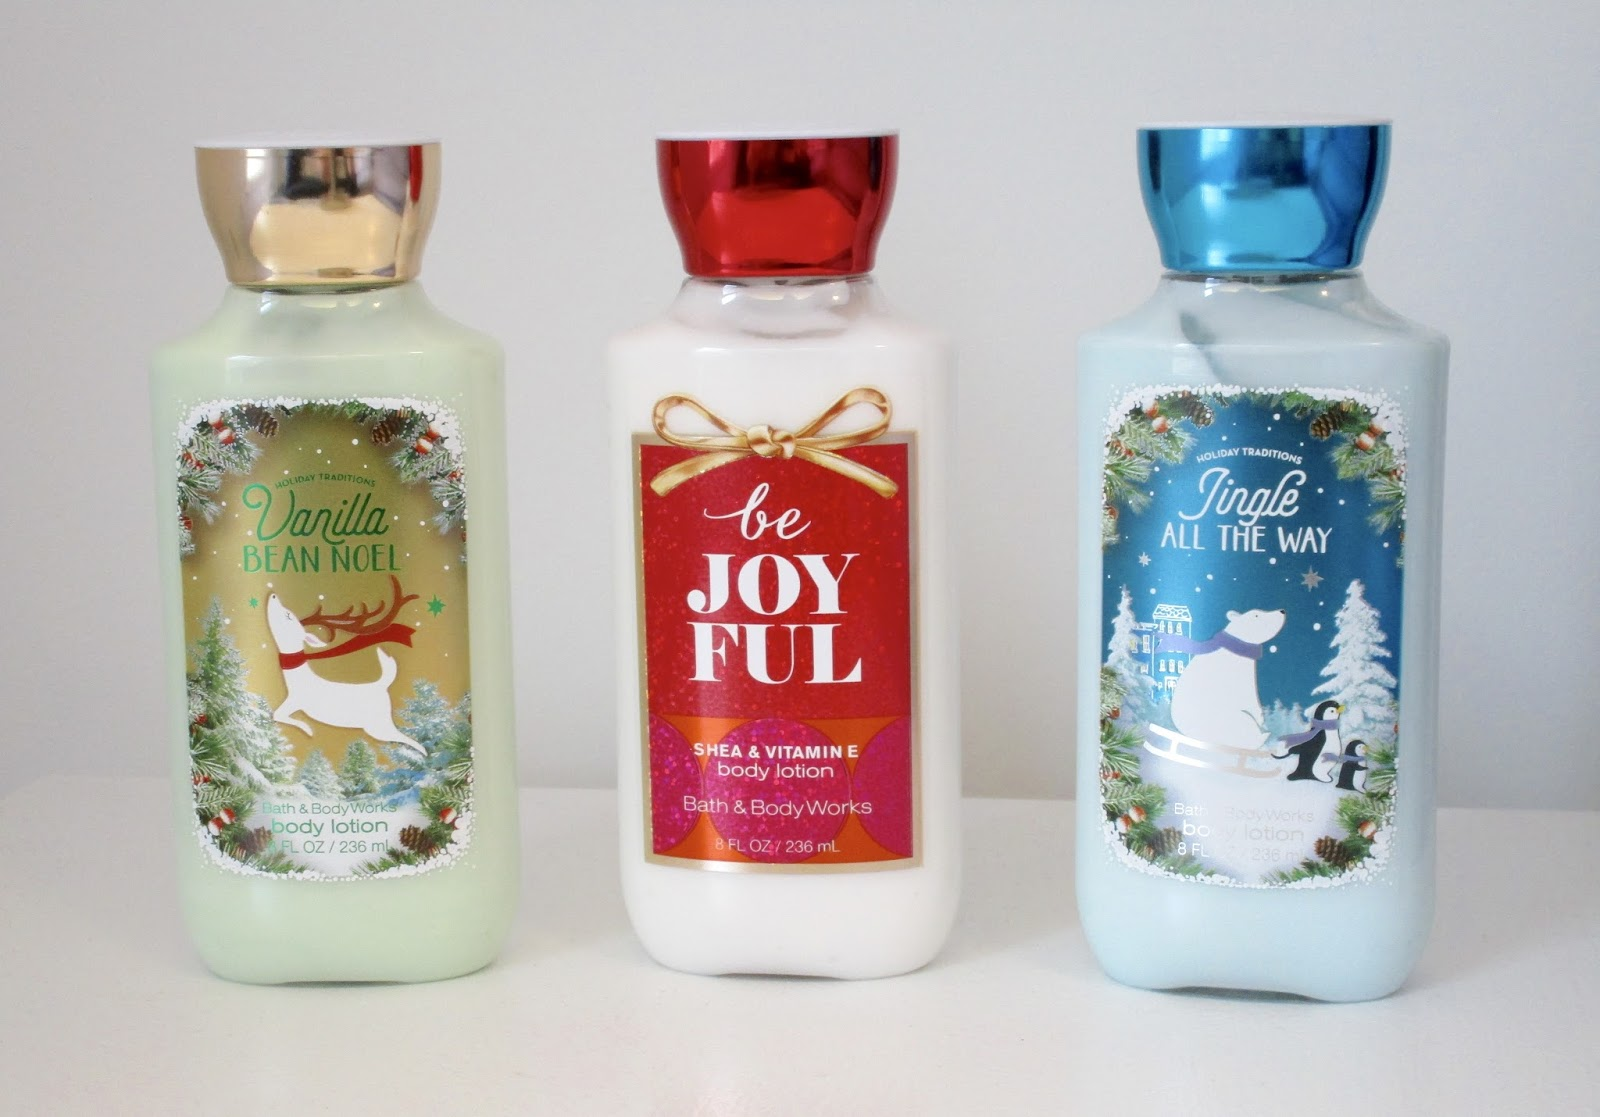 Bath and body works holiday scents - Vanilla Bean Noel Vanilla Is A Usual Scent That You Can Get Is Lotions And Creams This One Is On The Sweeter Side It Also Has A Warm Aroma Like Winter